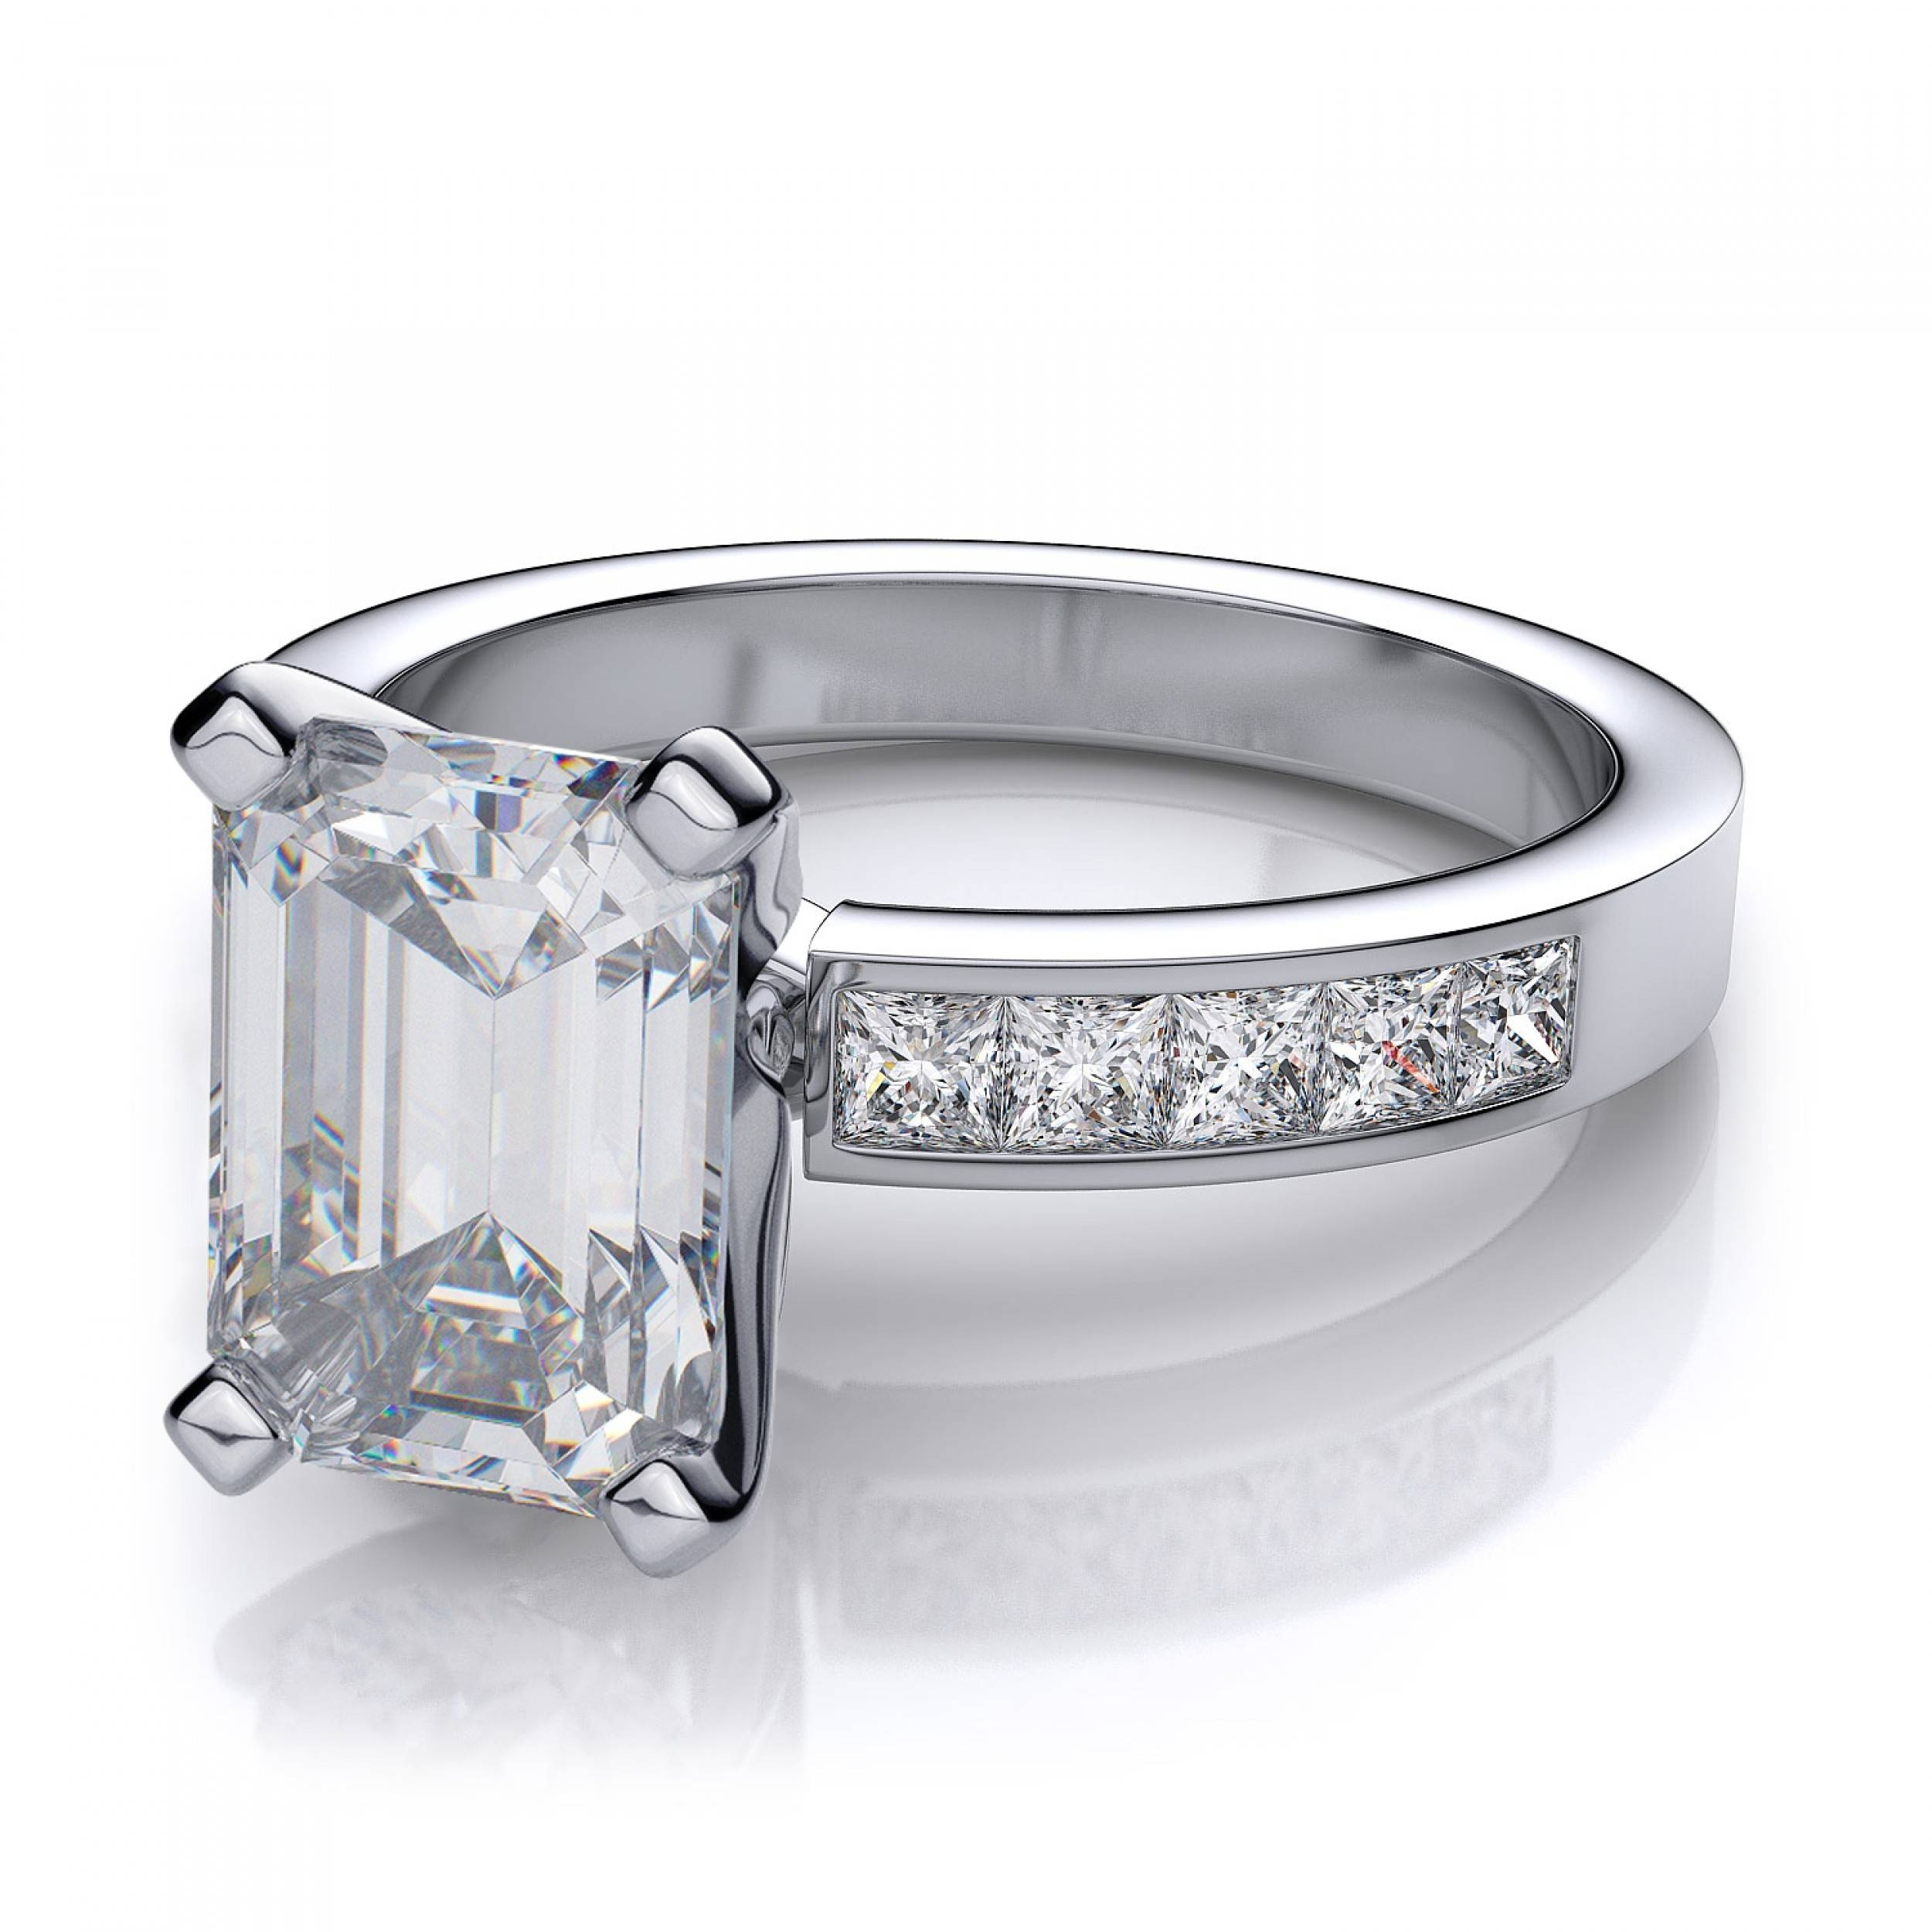 50ctw Channel Set Emerald Cut Sidestones Engagement Ring Setting For White Emerald Engagement Rings (View 4 of 15)